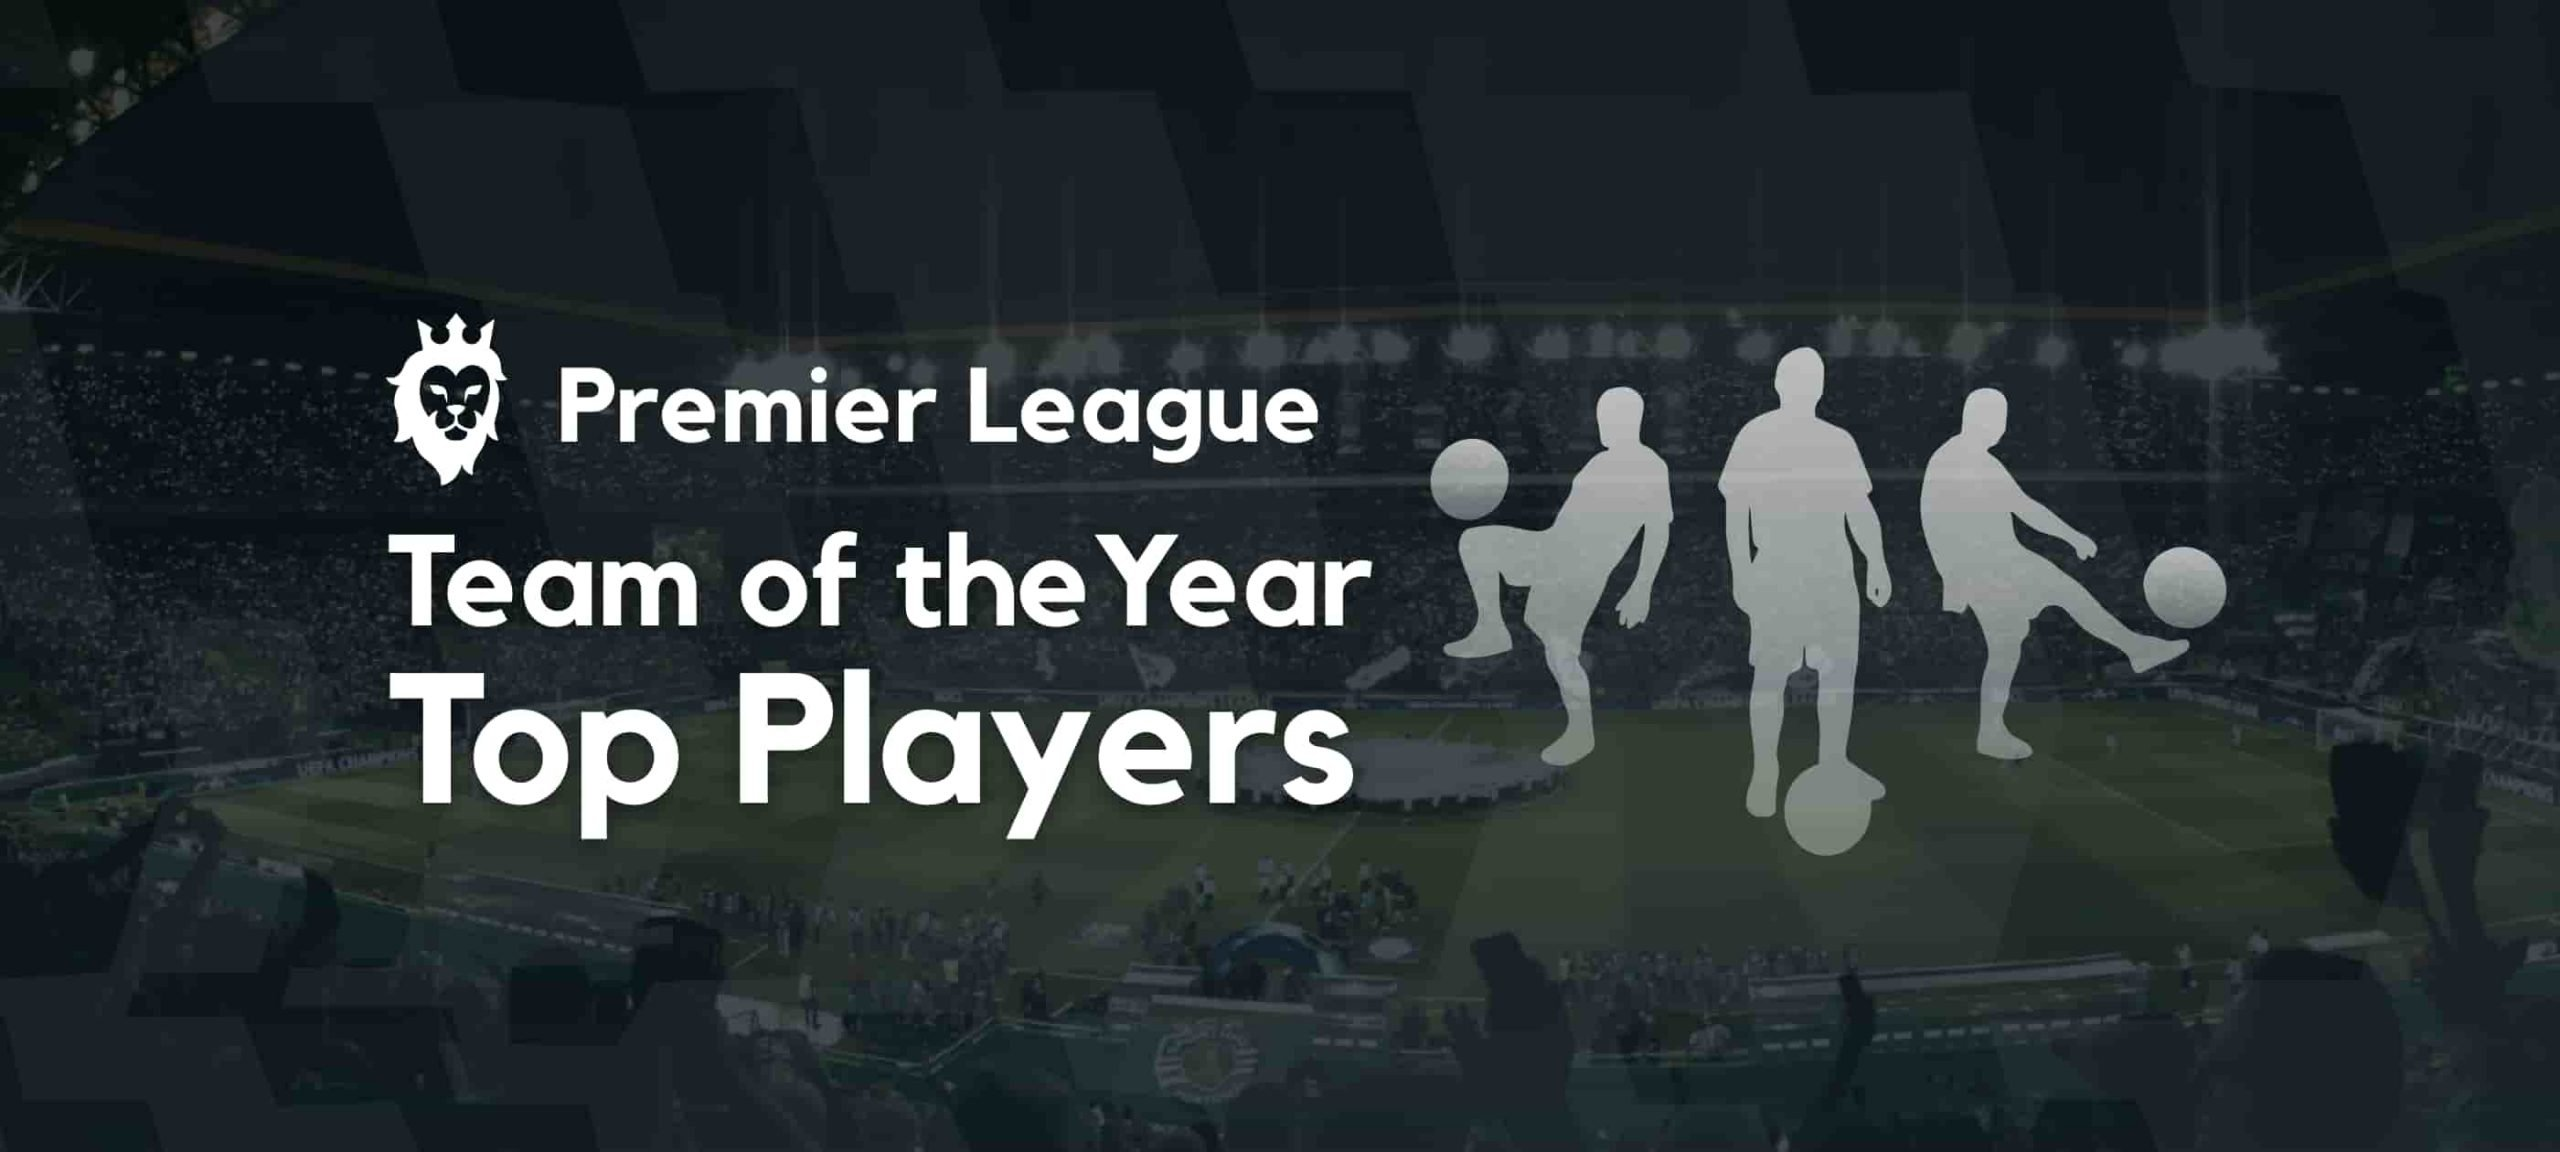 PL Team of the Year Top Players